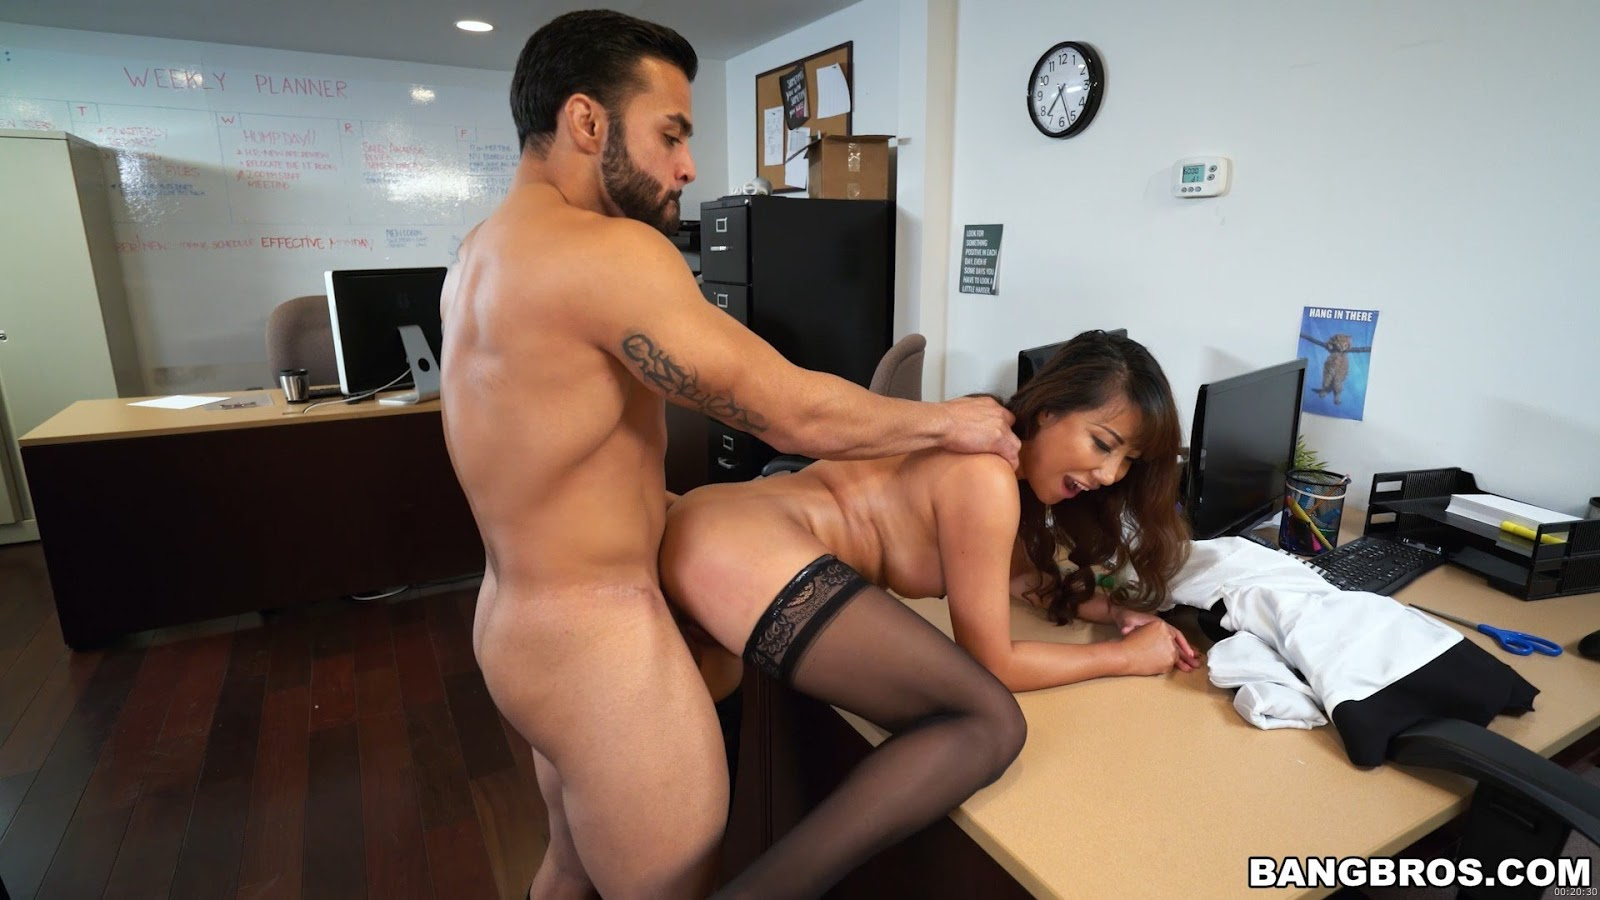 [bangbros]2017-04-22 Tiffany finally gets fucked in her office